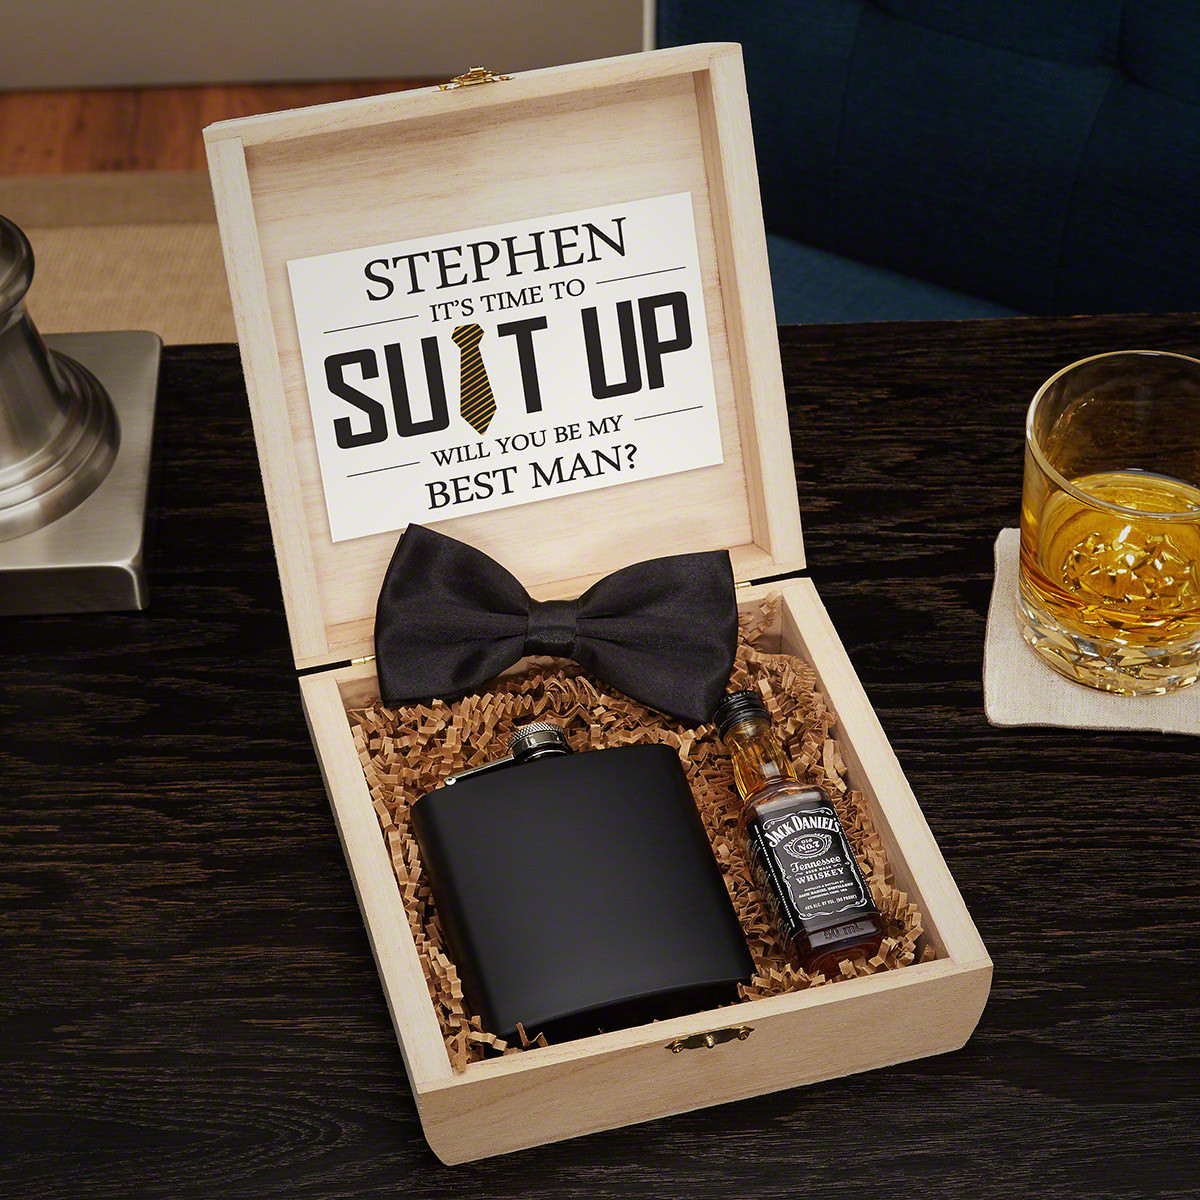 Best ideas about Groomsmen Wedding Gift Ideas . Save or Pin Personalized Groomsmen Gifts and Wooden Crate Set Now.